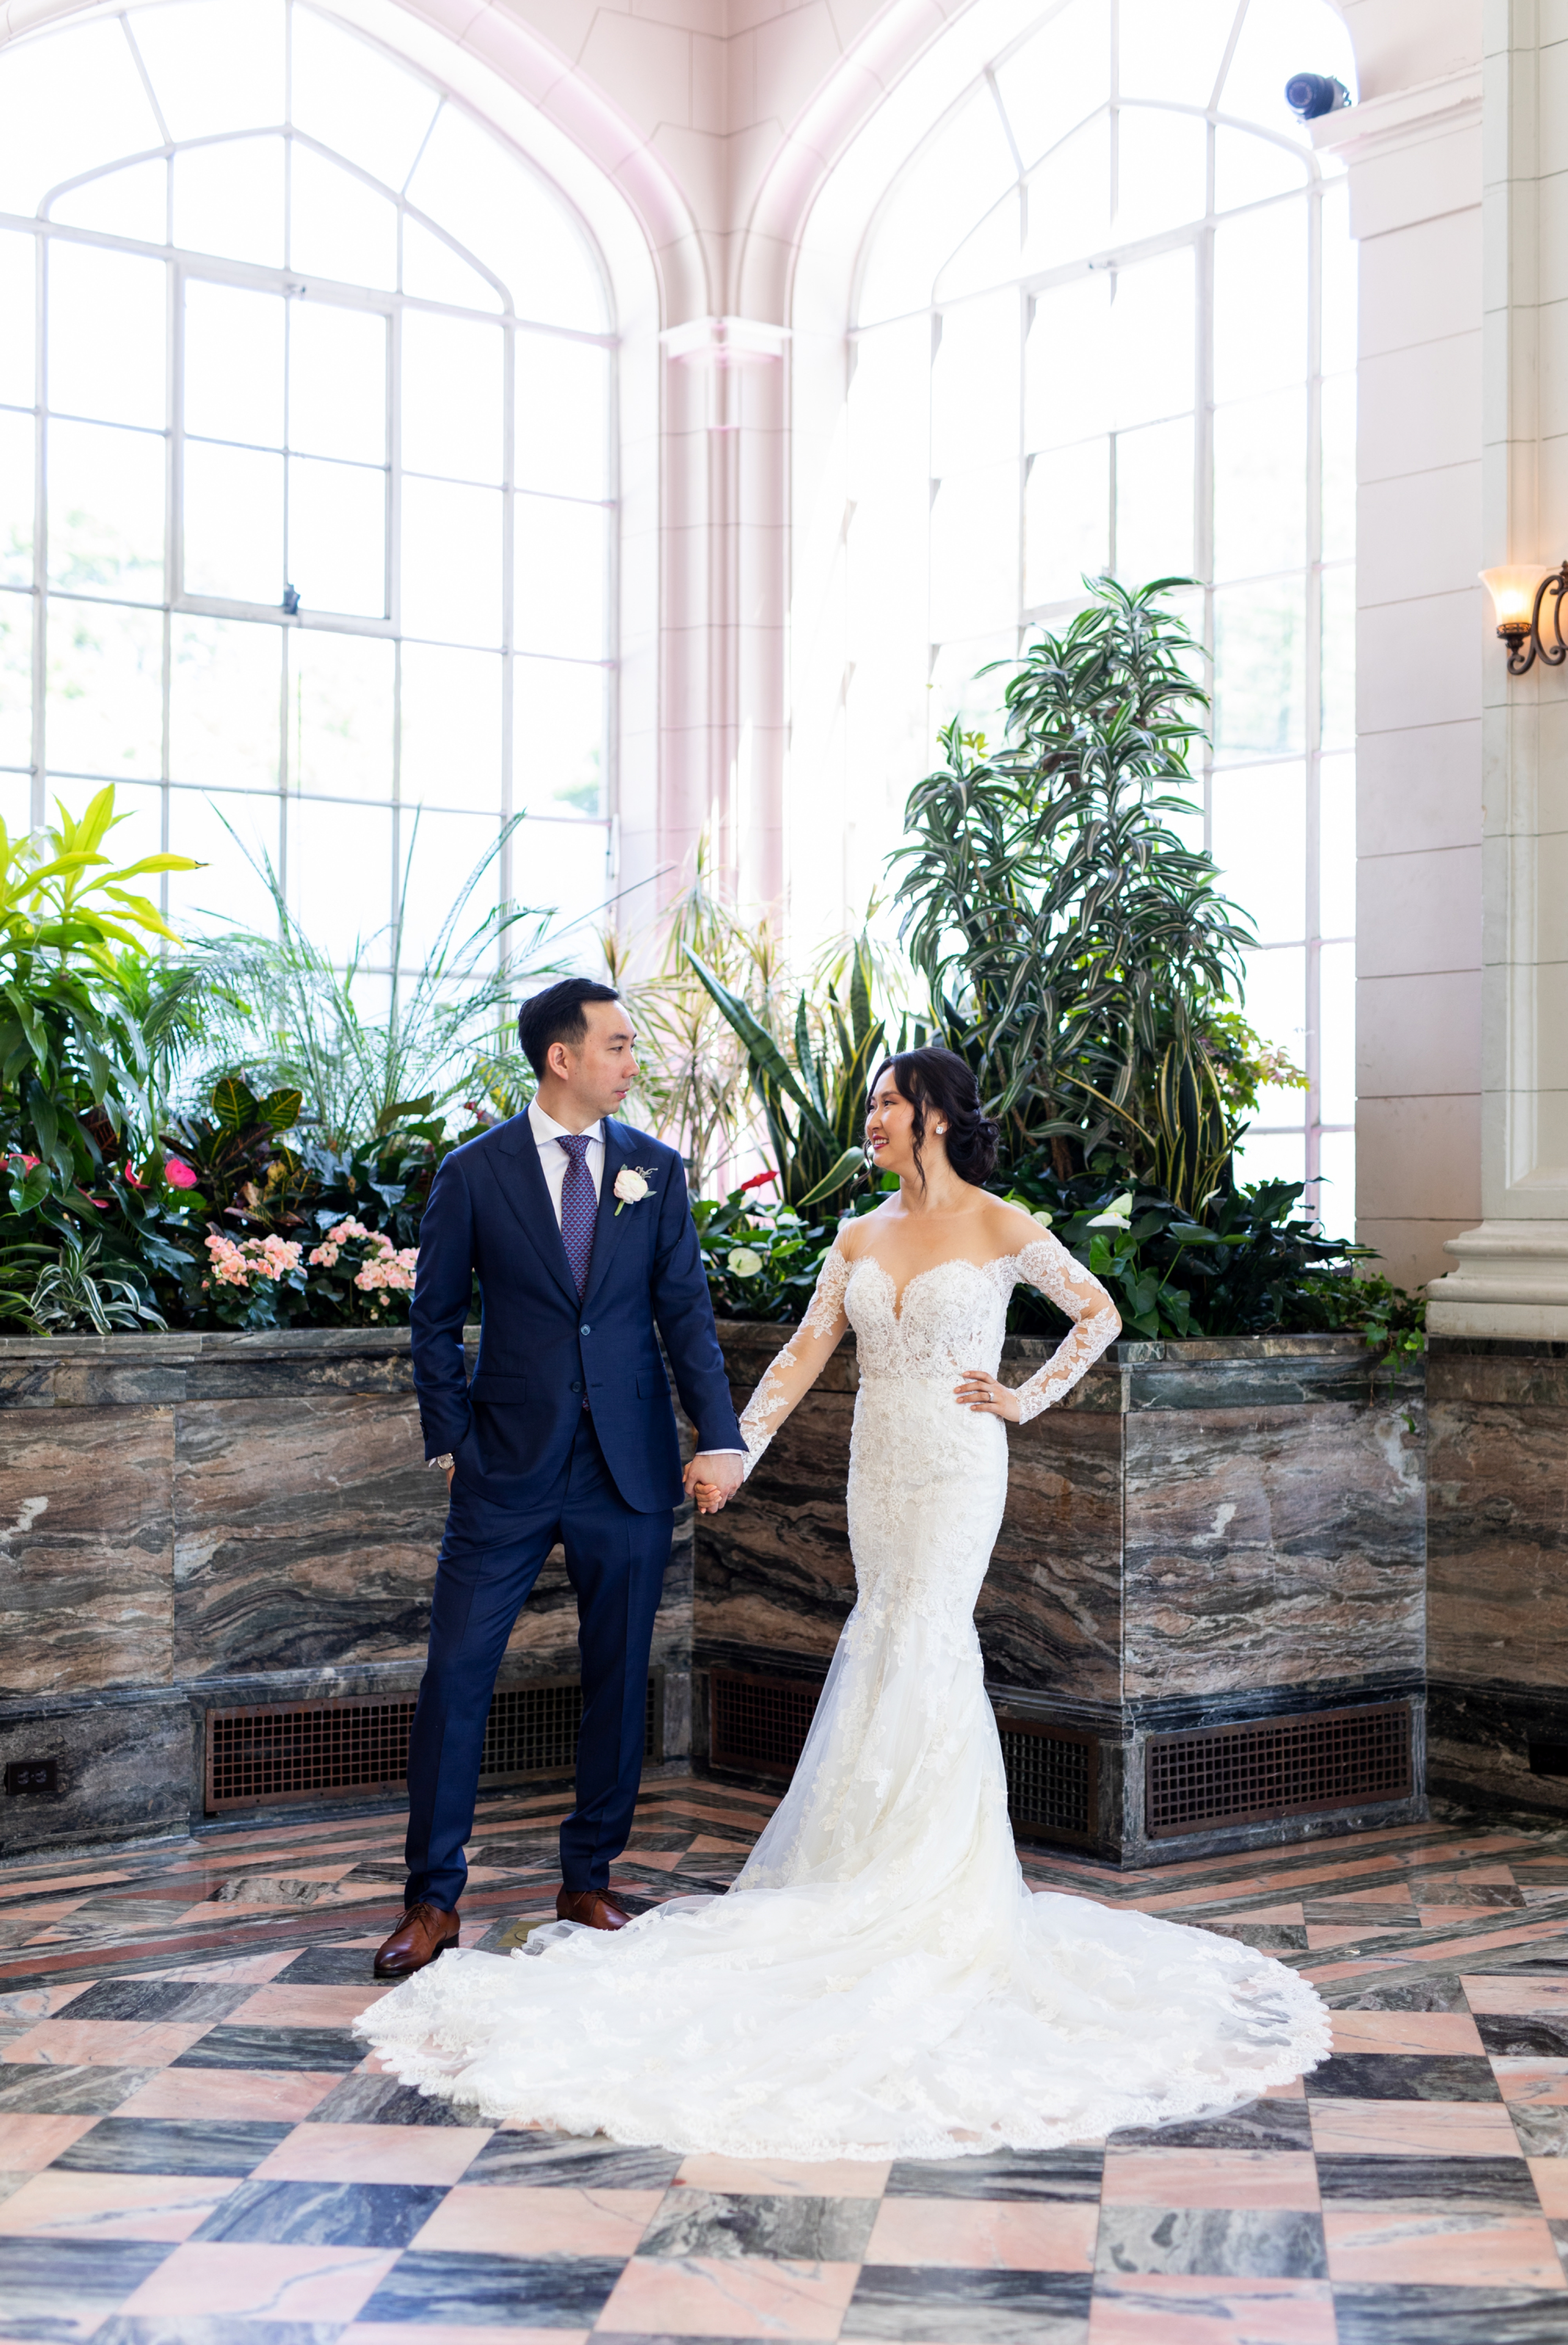 Pronovias Bride Groom Toronto Casa Loma Four Seasons Chinese Wedding Zsuzsi Pal Photography Cindy Brian